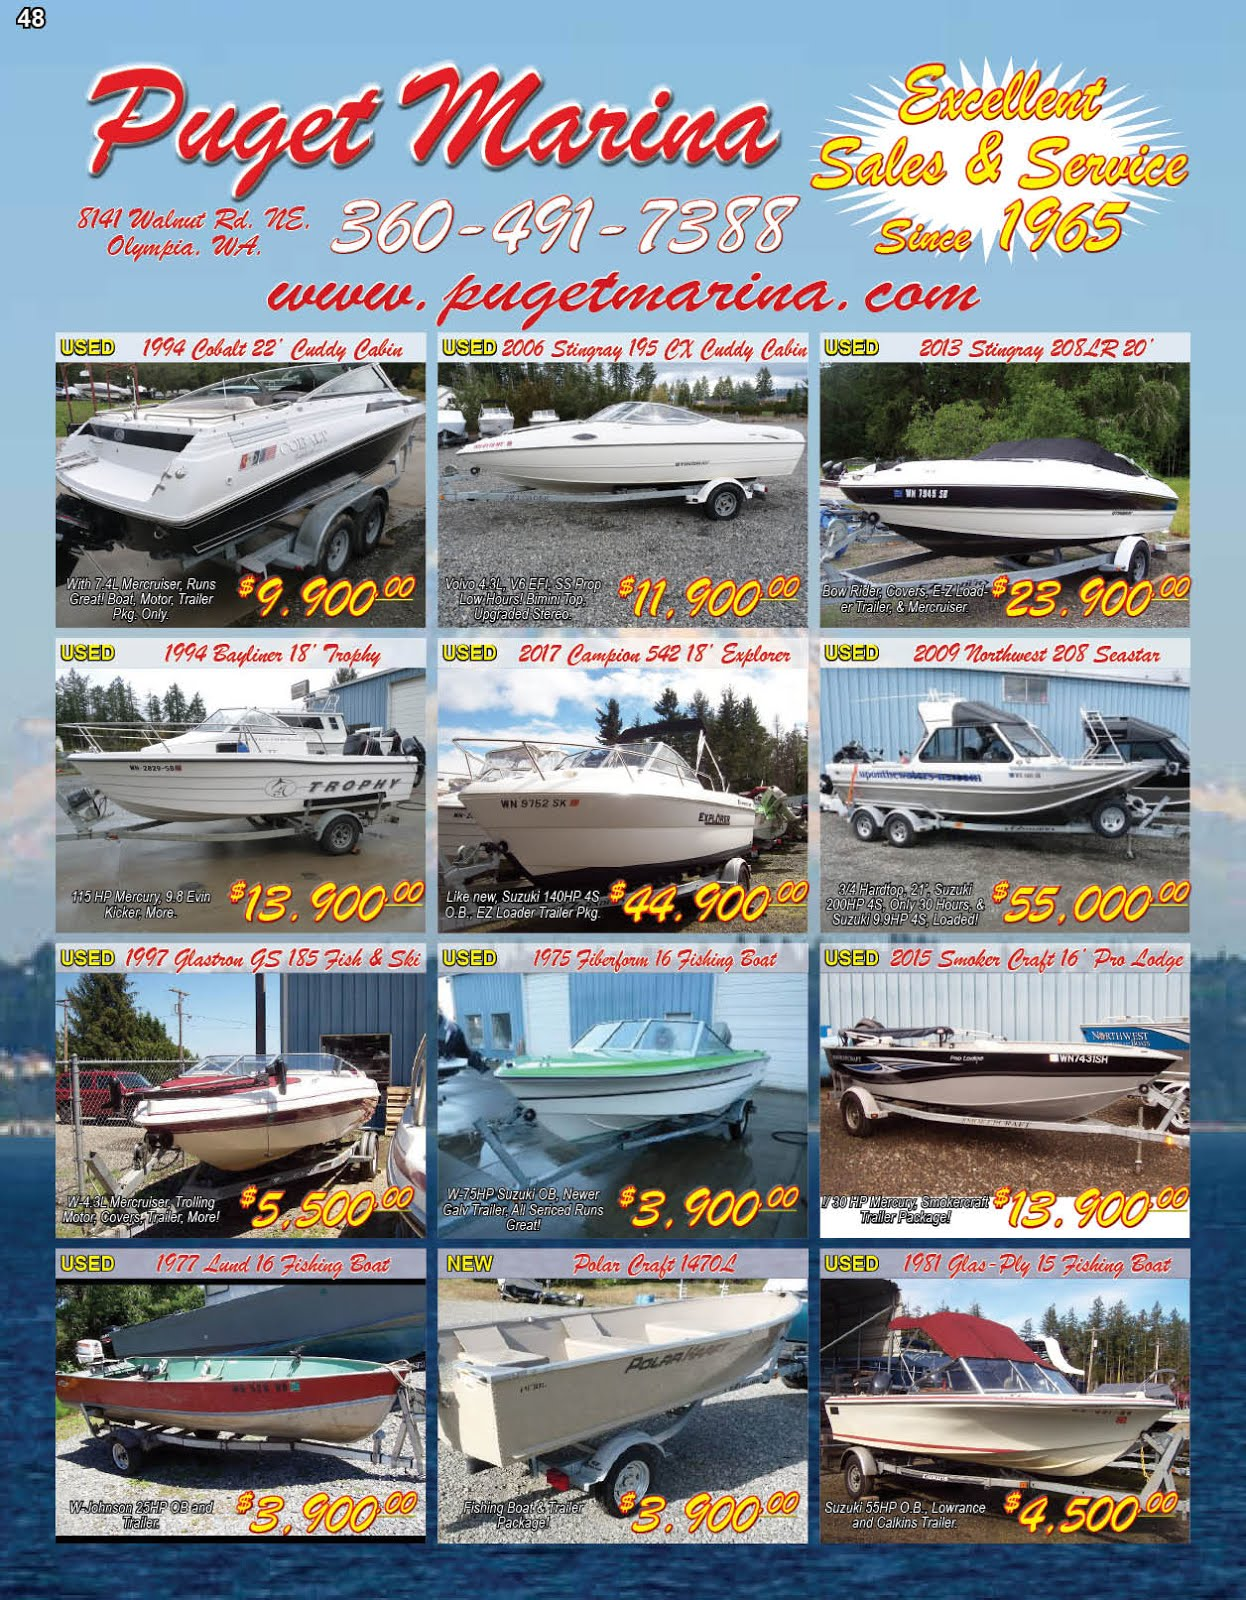 """Puget Marina"" Quality Boat Sales And Service Excellence Since 1965"